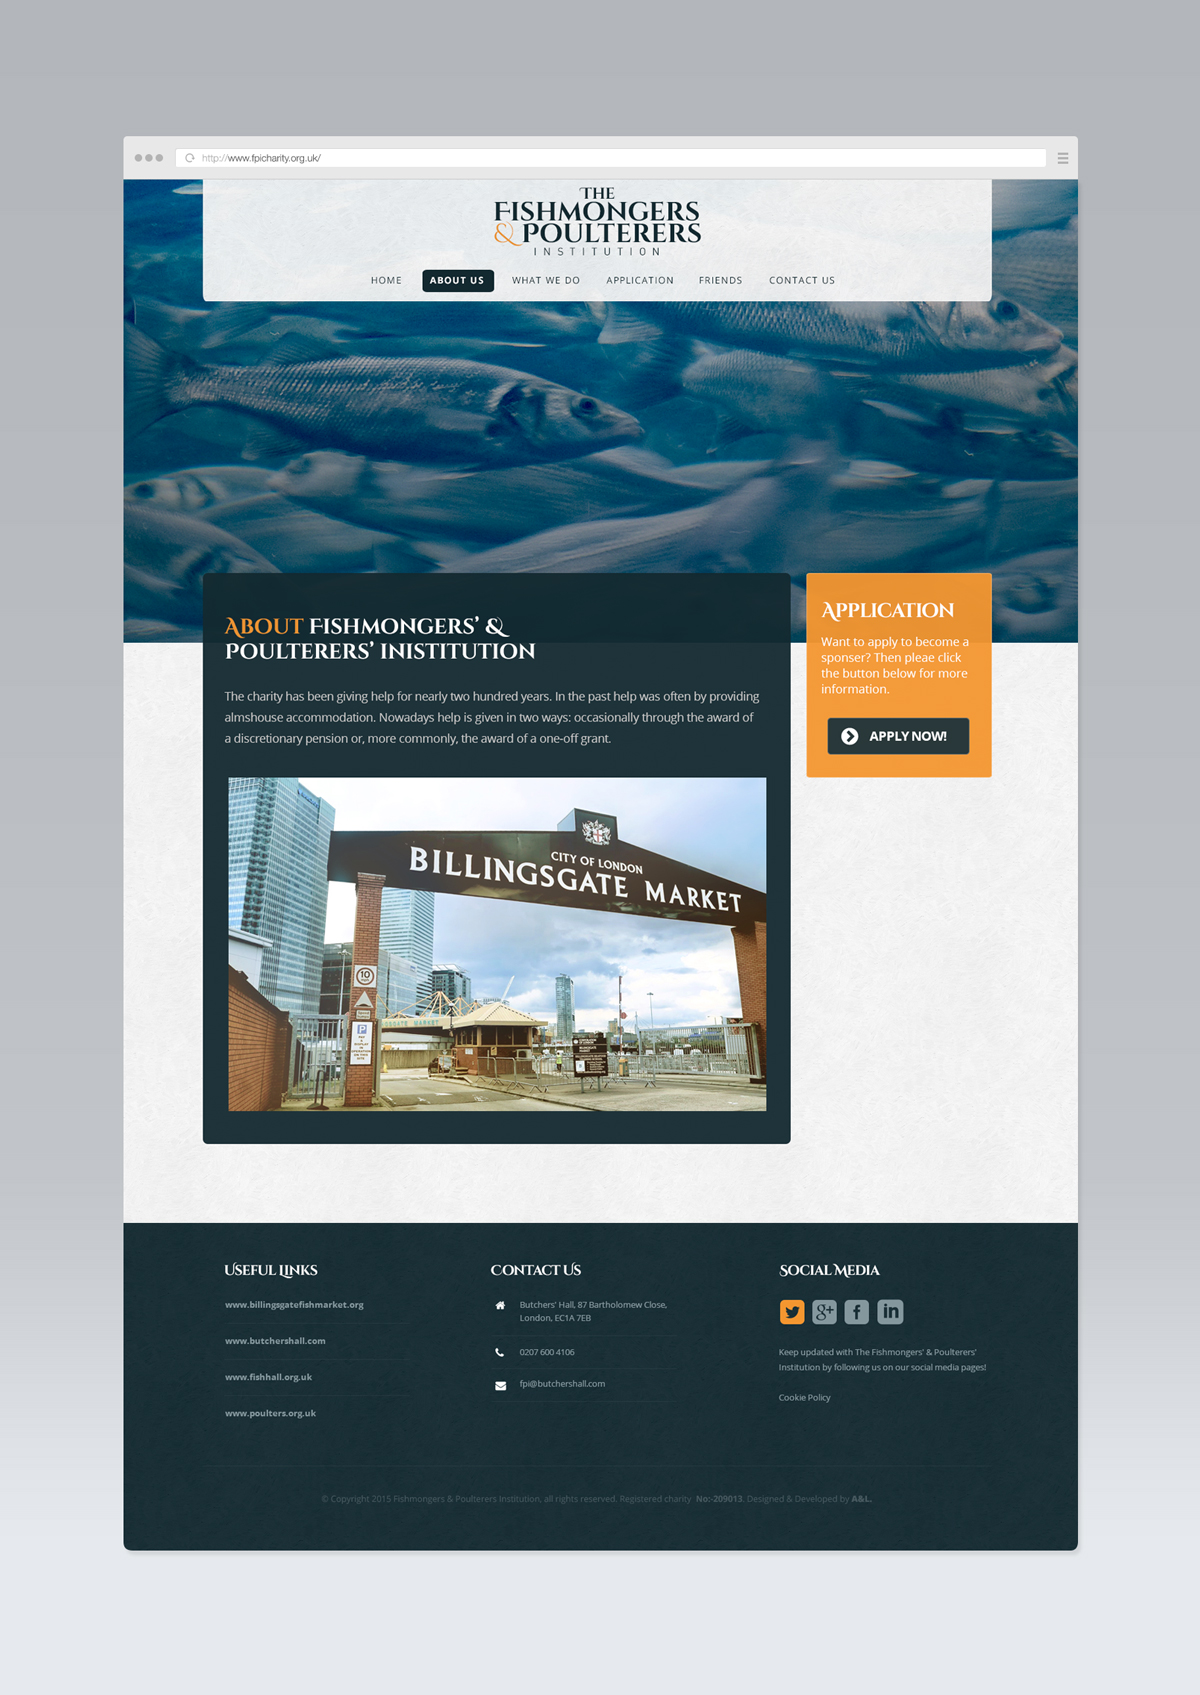 Fishmongers' & Poulterers' Institution, Website Development